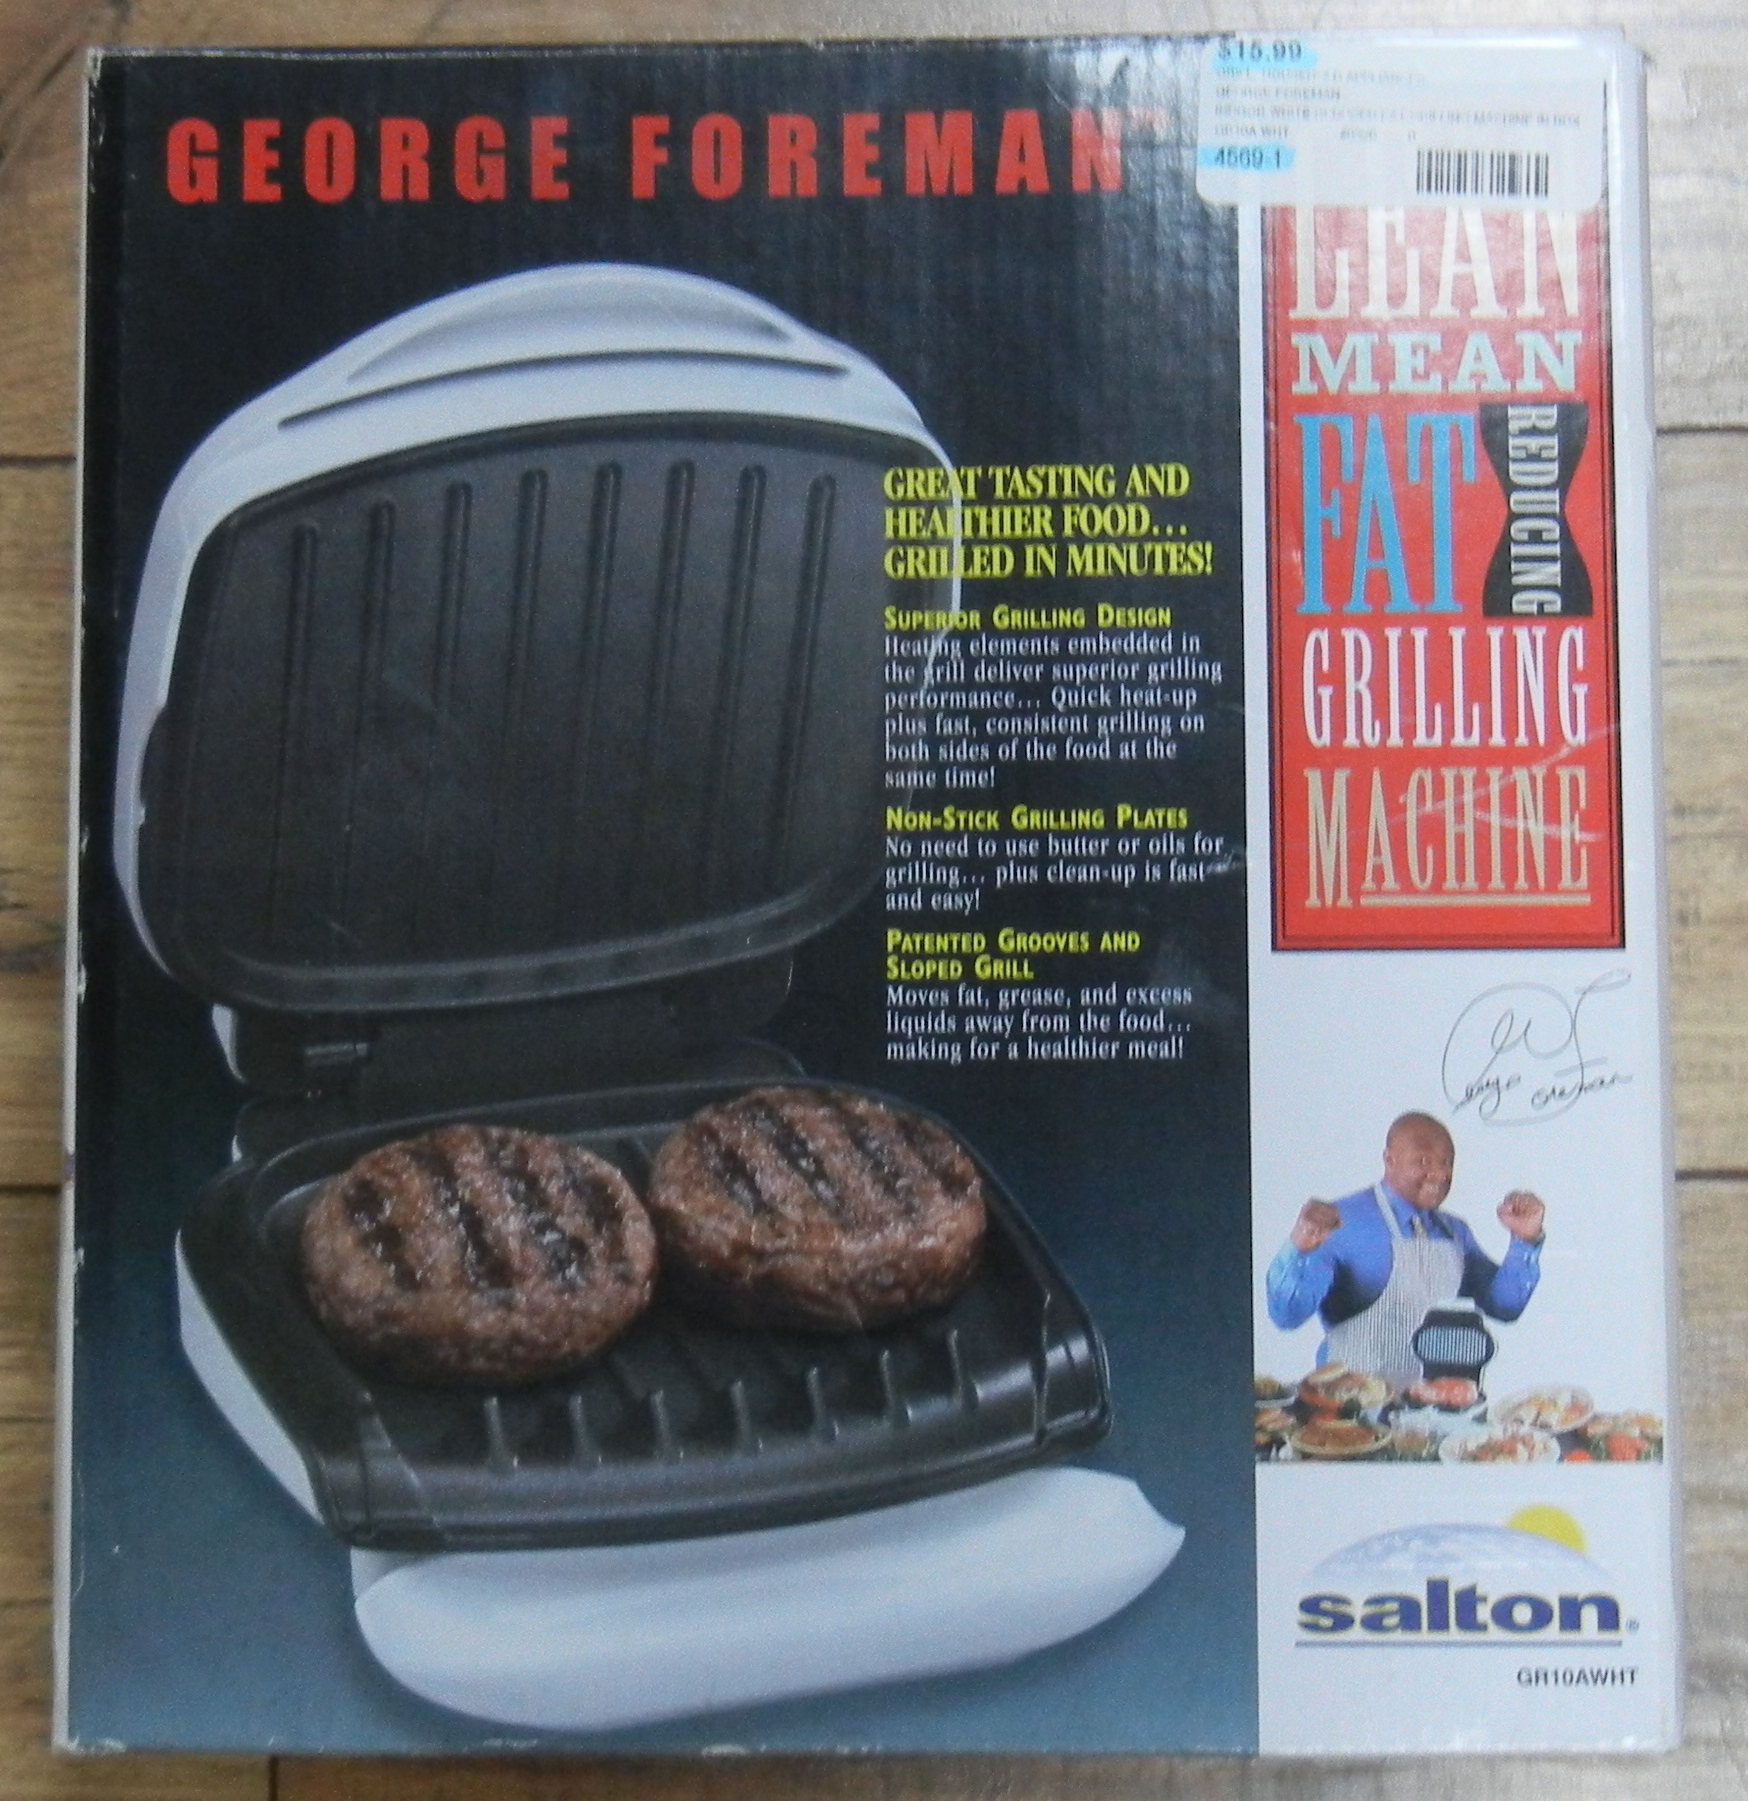 GEORGE FOREMAN - GR10A WHT - INDOOR WHITE REDUCED FAT GRILLING MACHINE